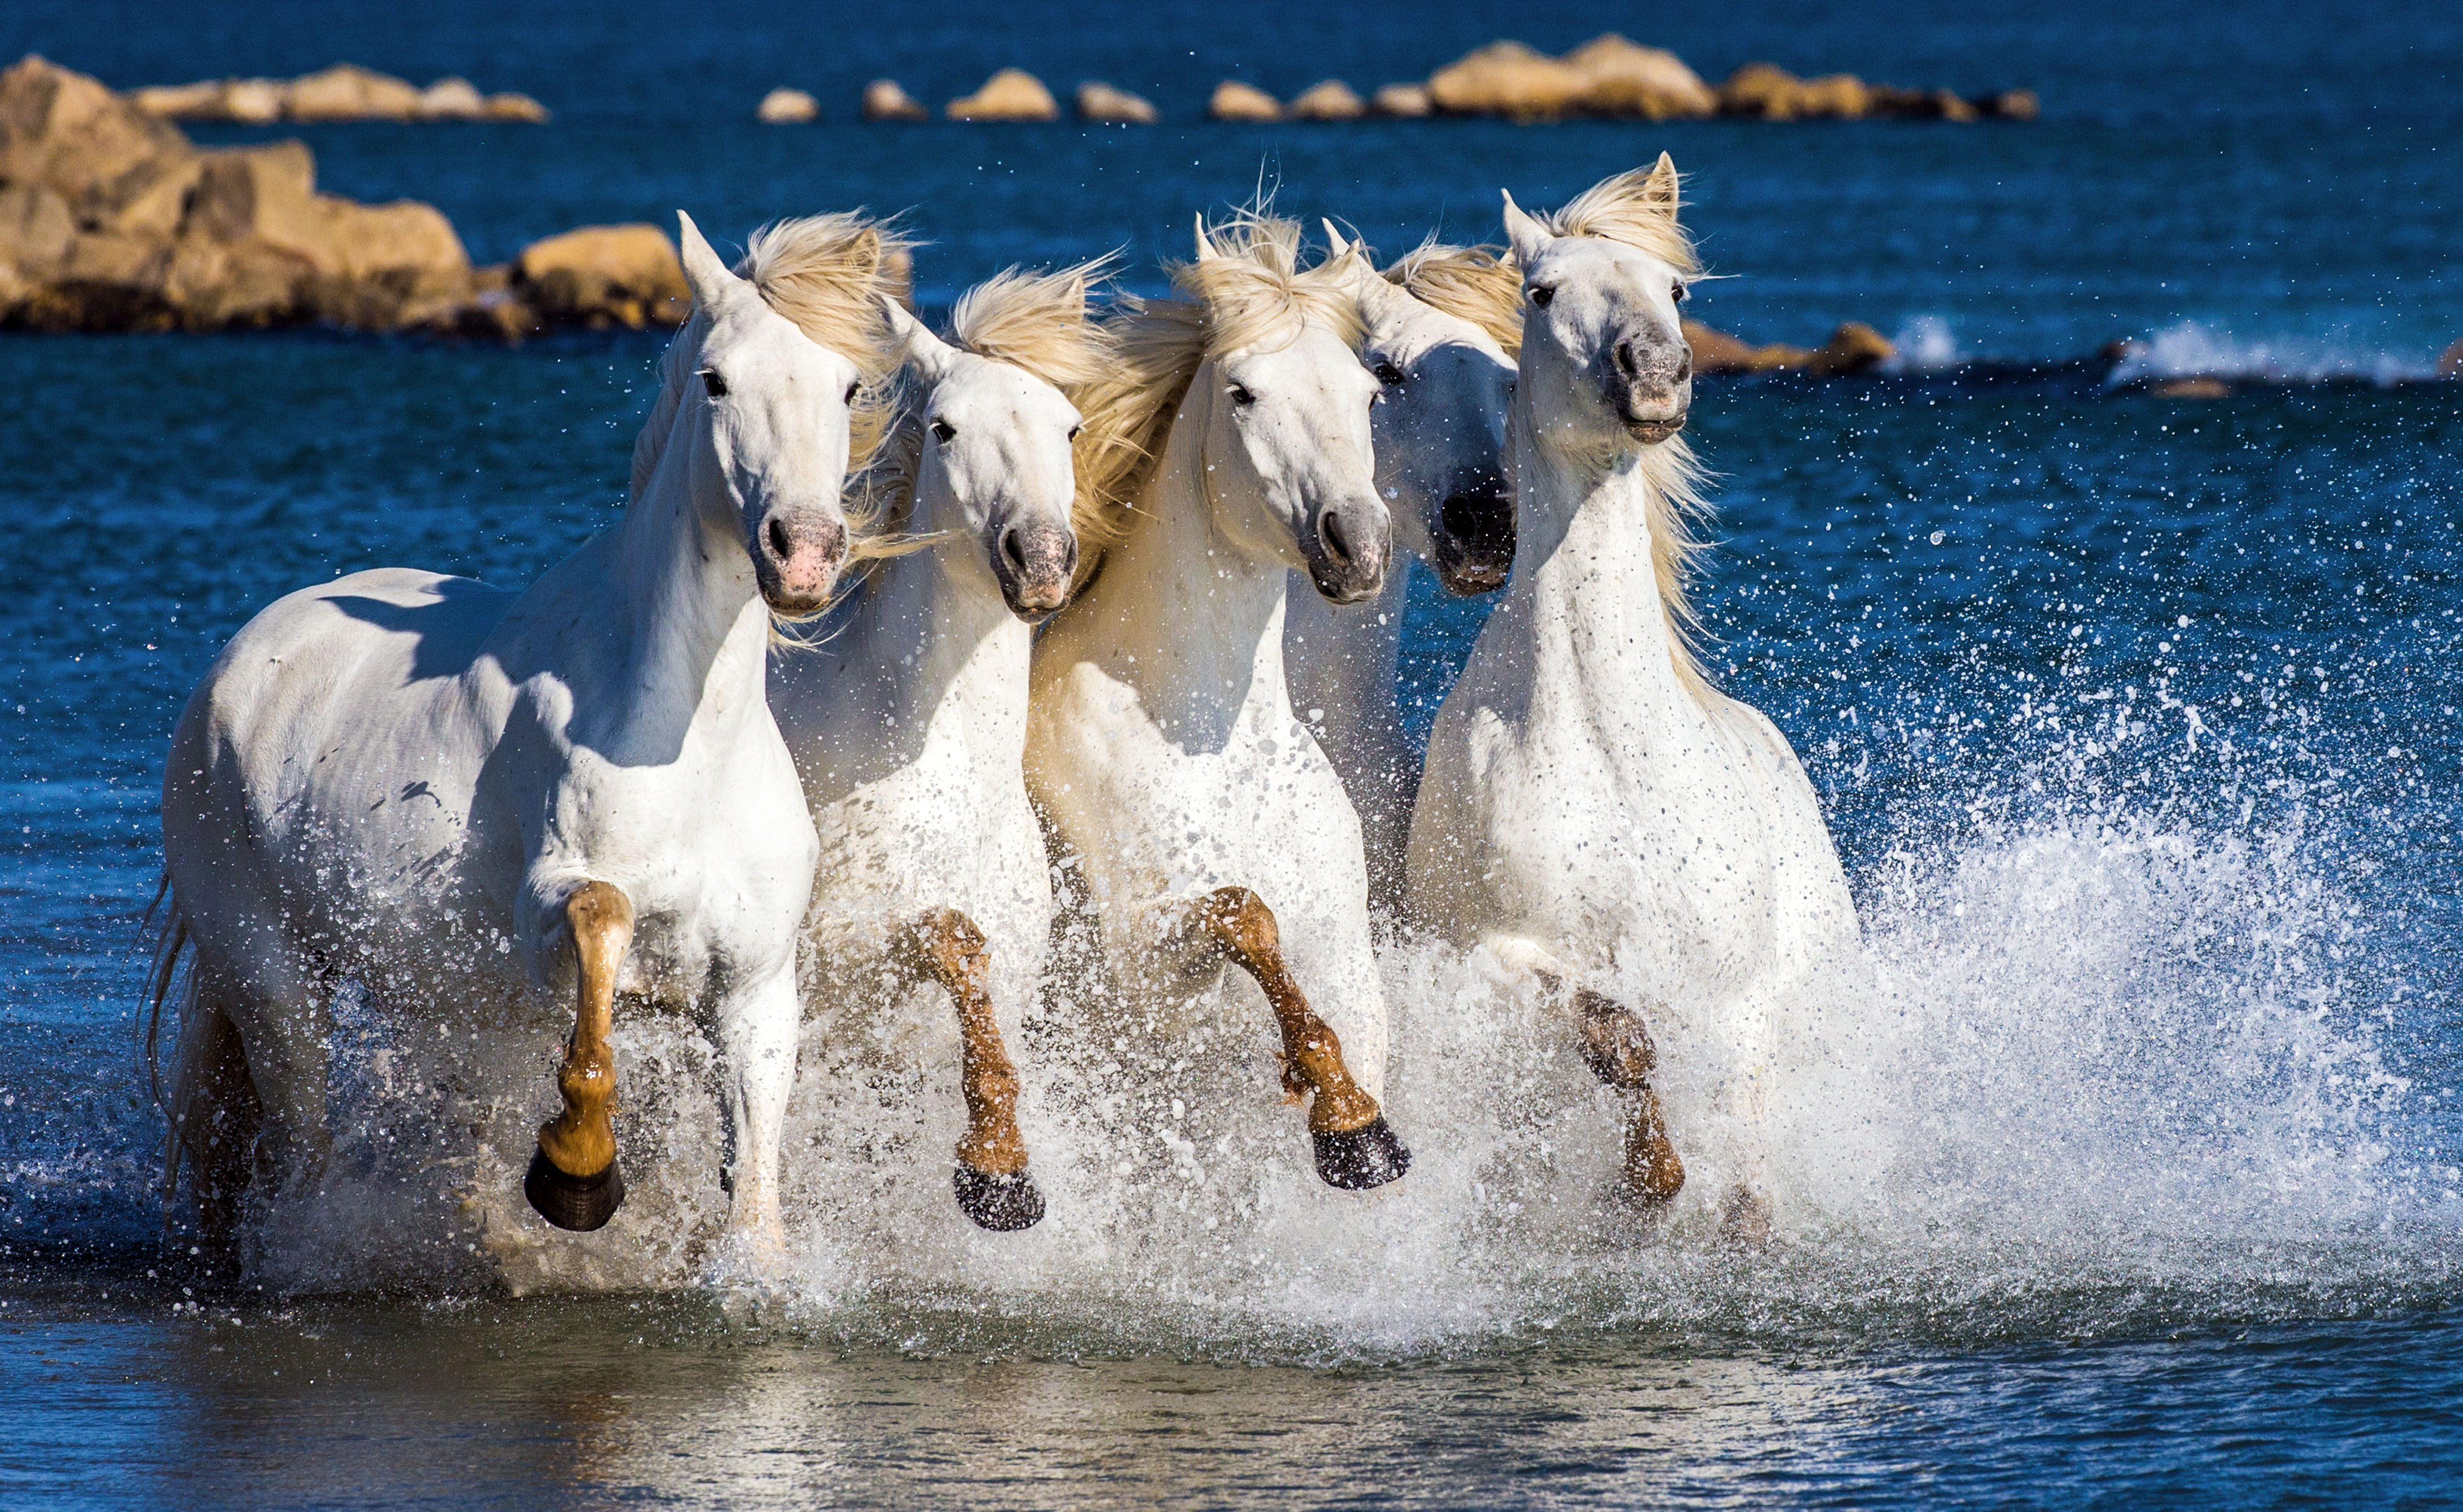 Stunning Images Show Wild Horses As They Gallop Through Lagoons Caters News Agency